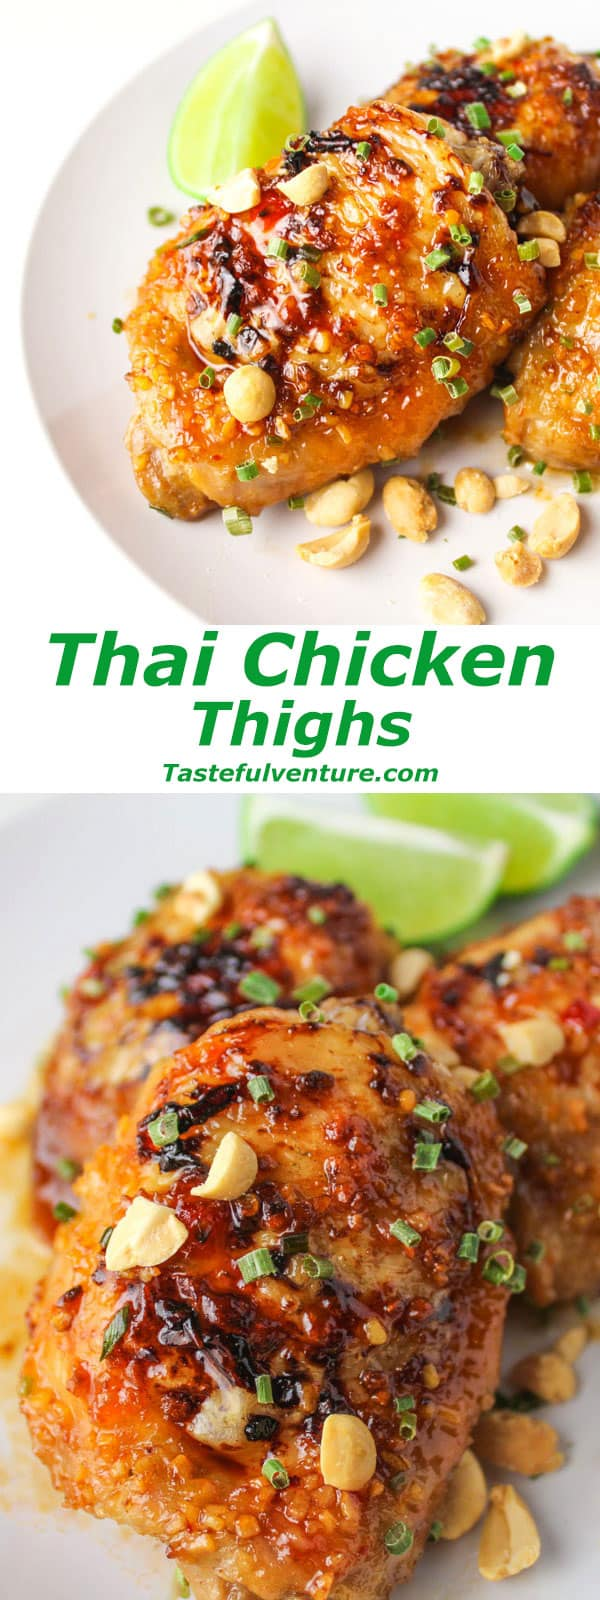 Thai Chicken Thighs that are super easy to make and finger lickin' good! | Tastefulventure.com